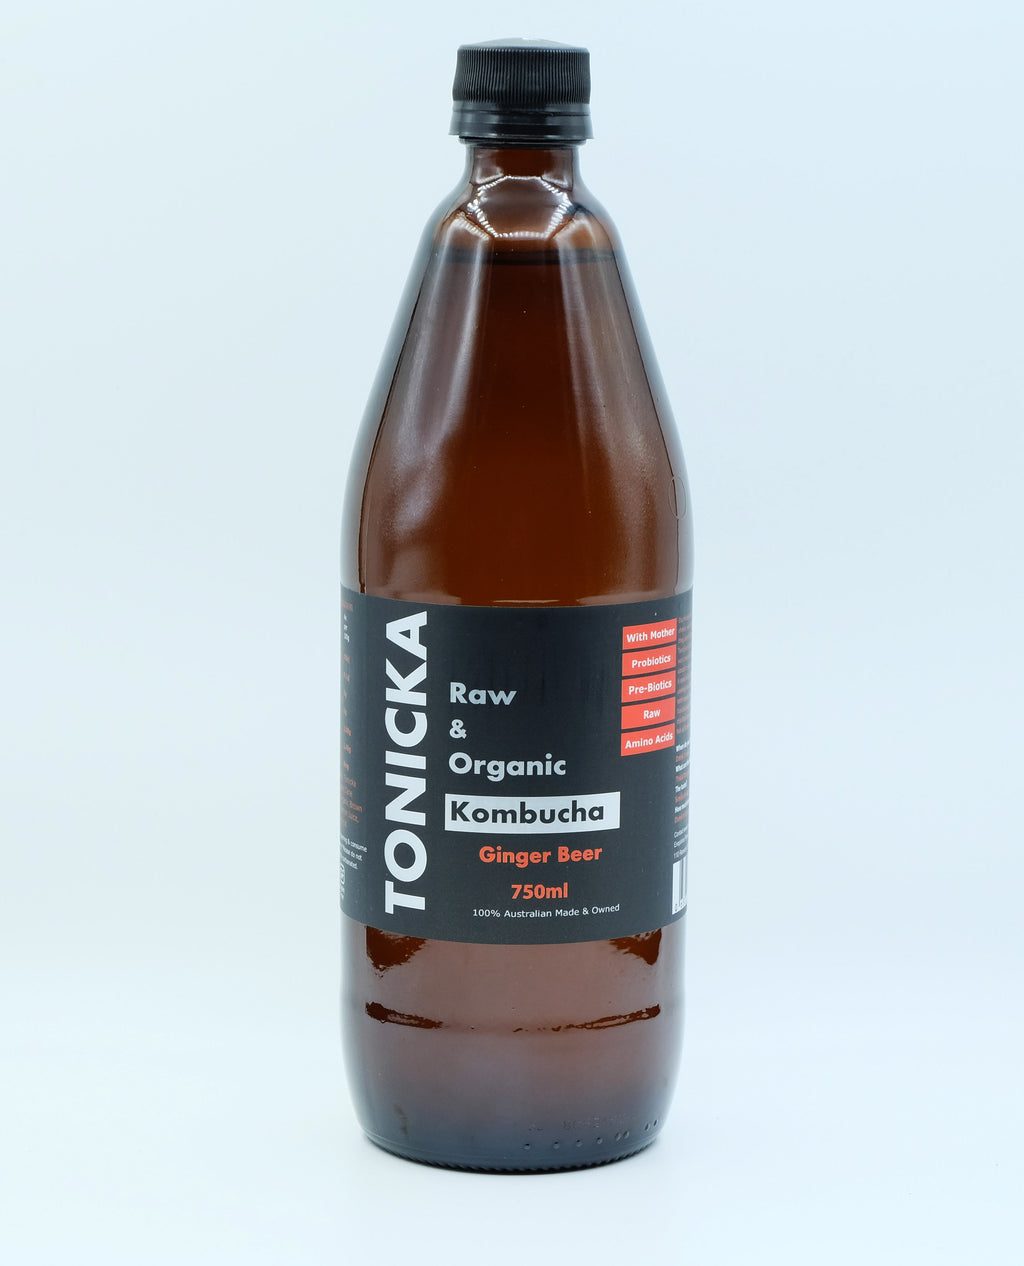 Ginger Beer Kombucha (750mL Bottle)